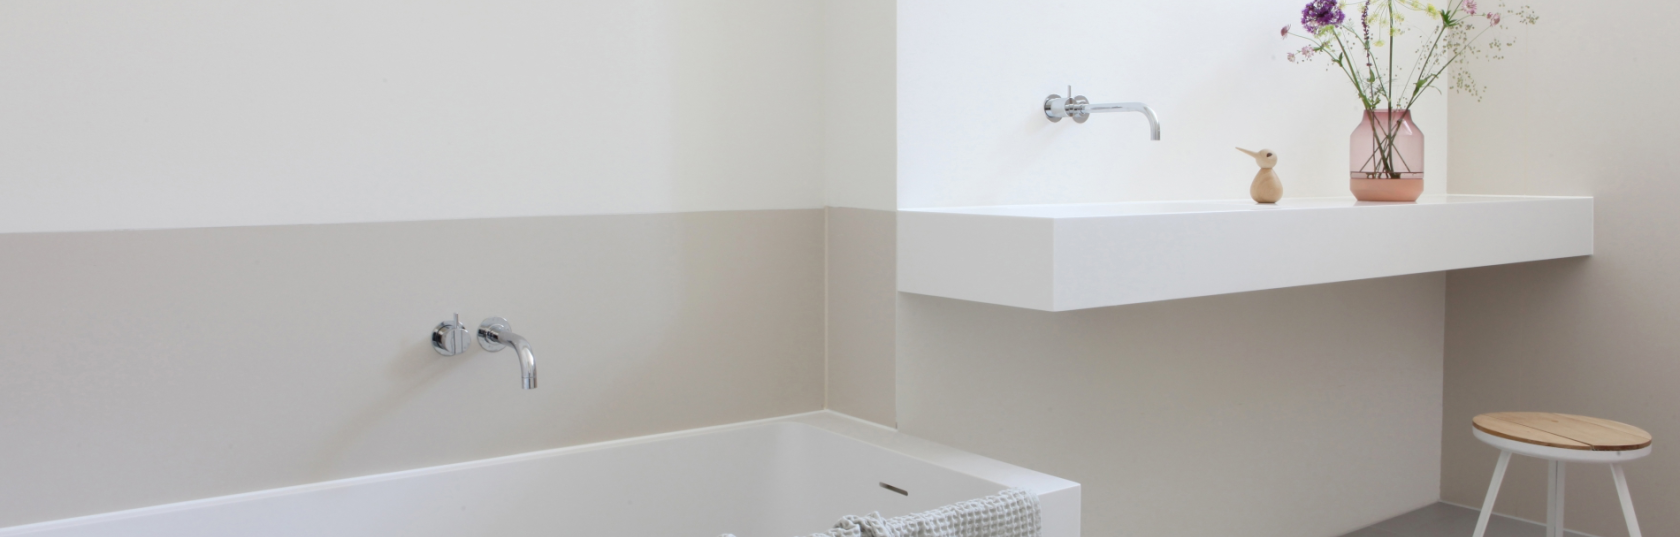 Basins & vanities for small bathrooms